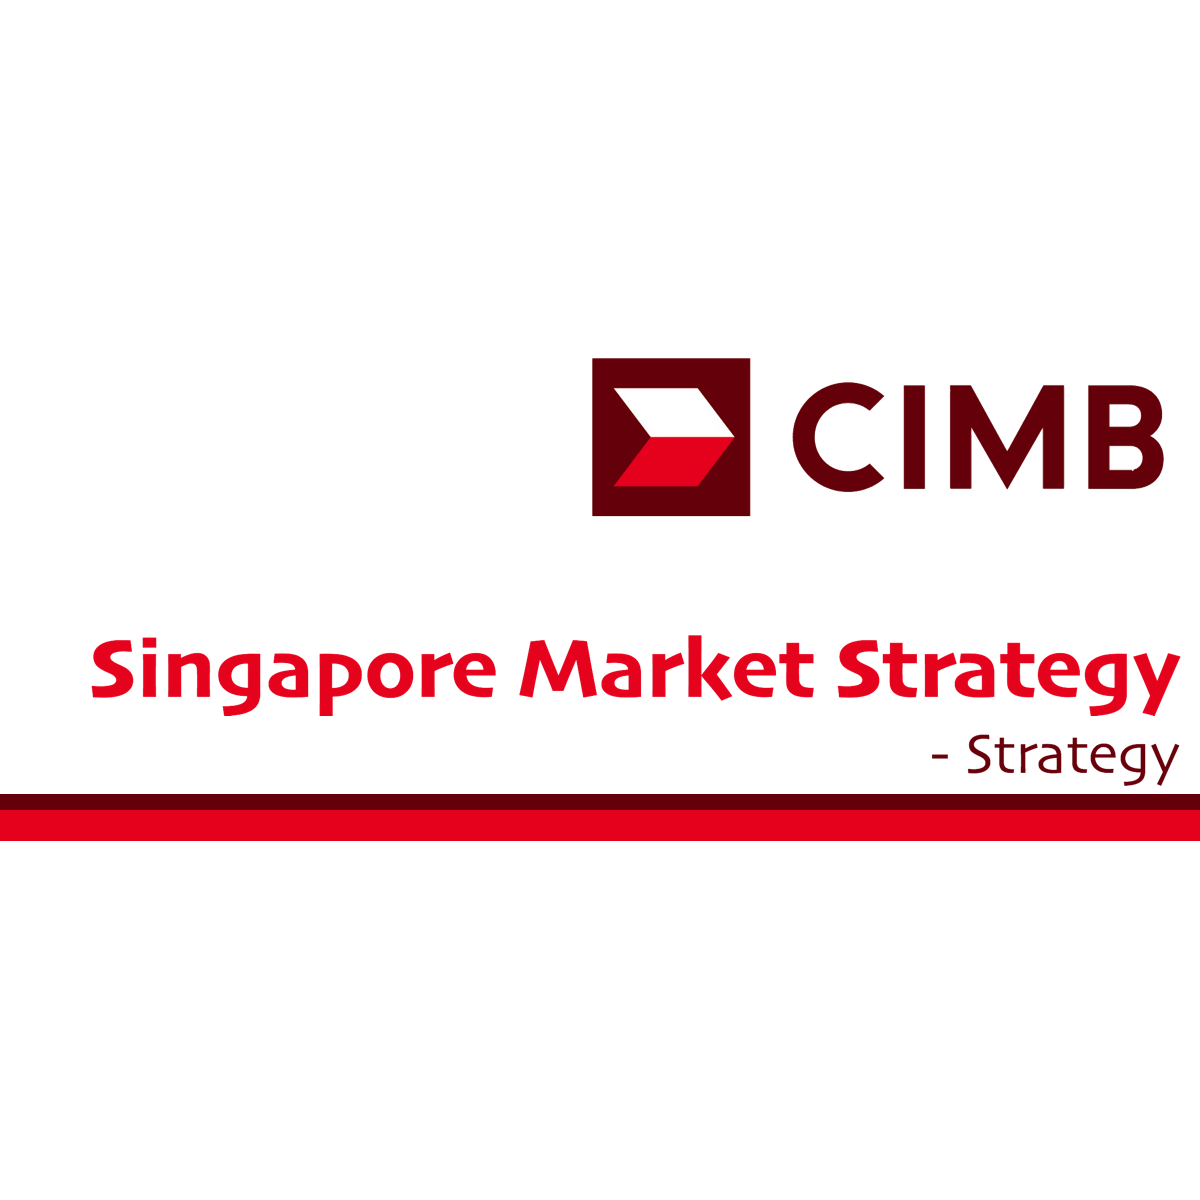 Singapore Strategy - CIMB Research 2017-02-09: Pioneers of the next generation